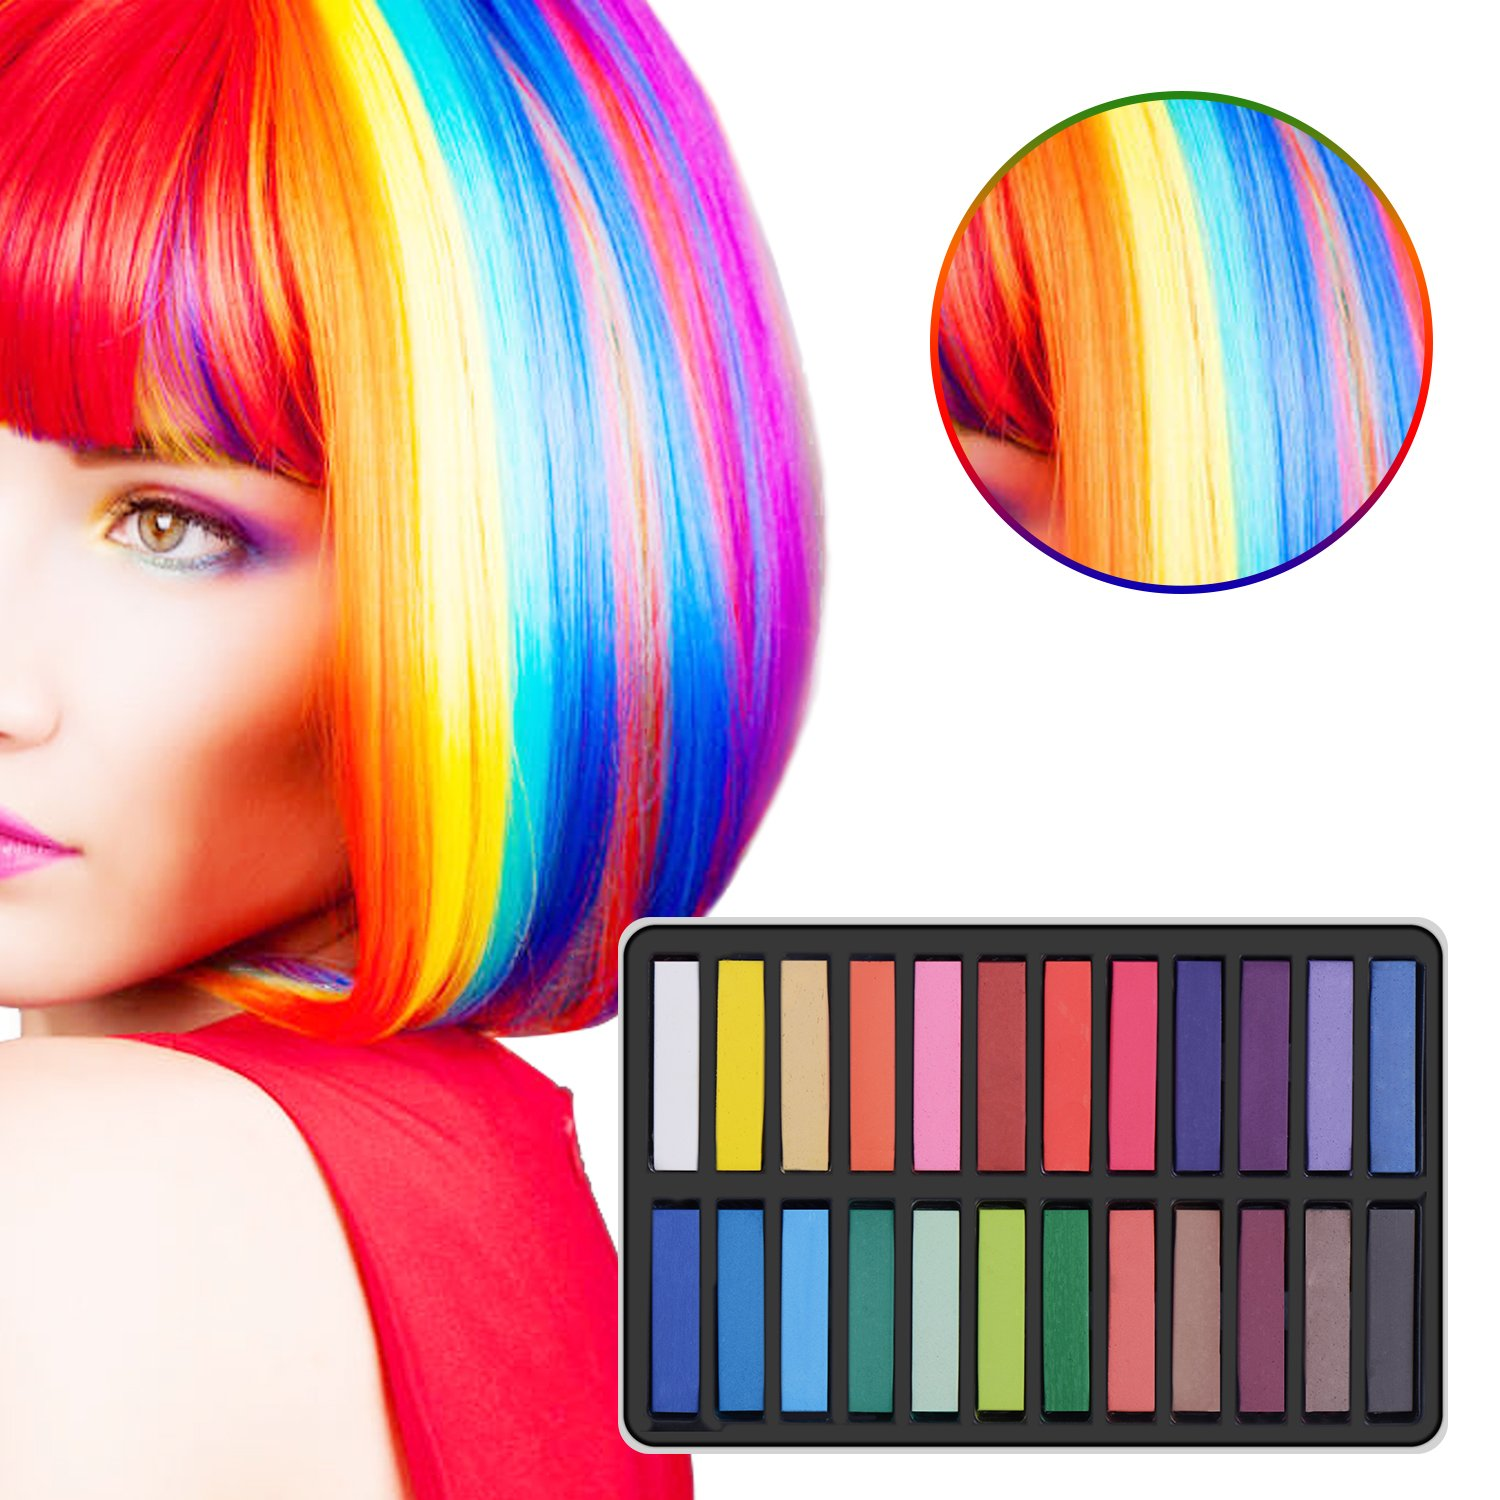 Ameauty Non-Toxic Temporary Washable Hair Chalk Set for Party, Cosplay and Gift, Works on All Hair (24 pcs)